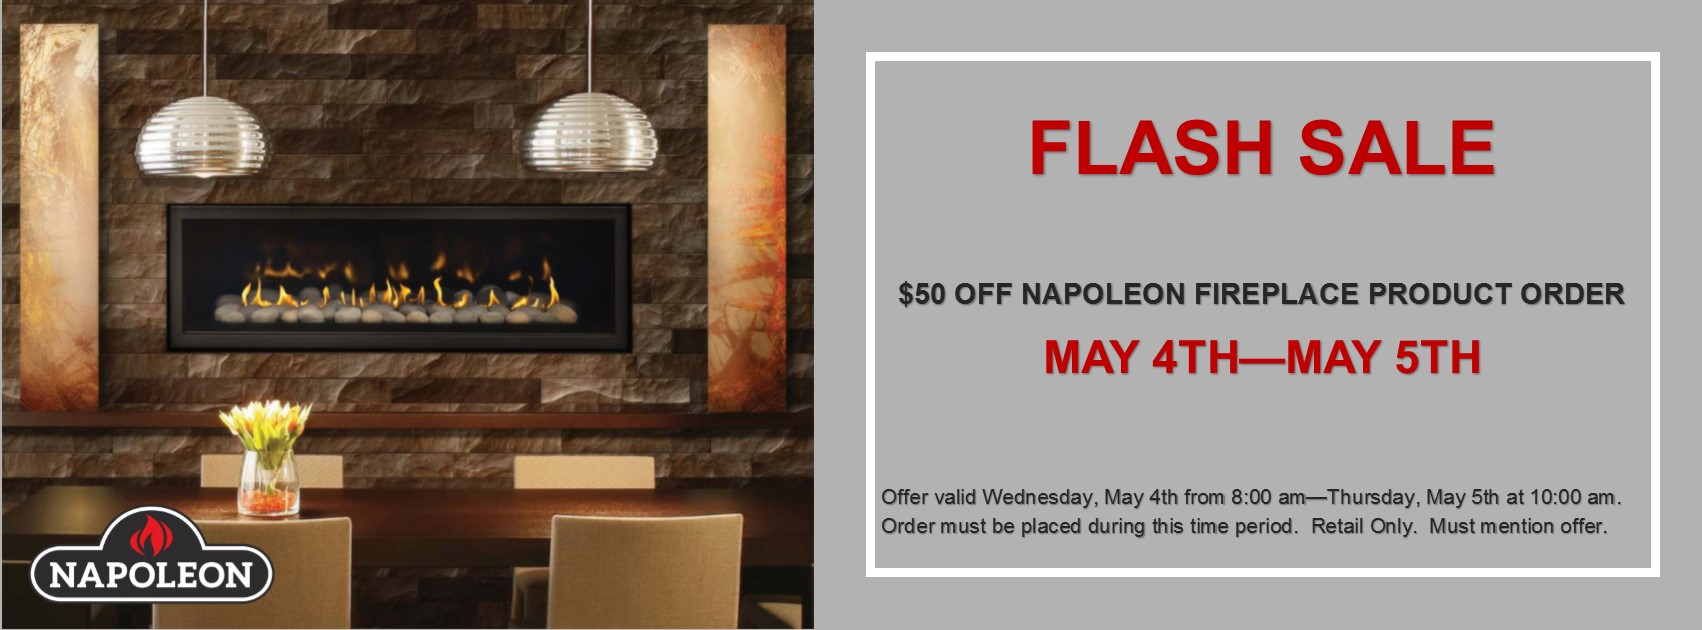 Napoleon Fireplace Serial Number Flash Sale 50 Off Napoleon Fireplace Product Order C Bennett